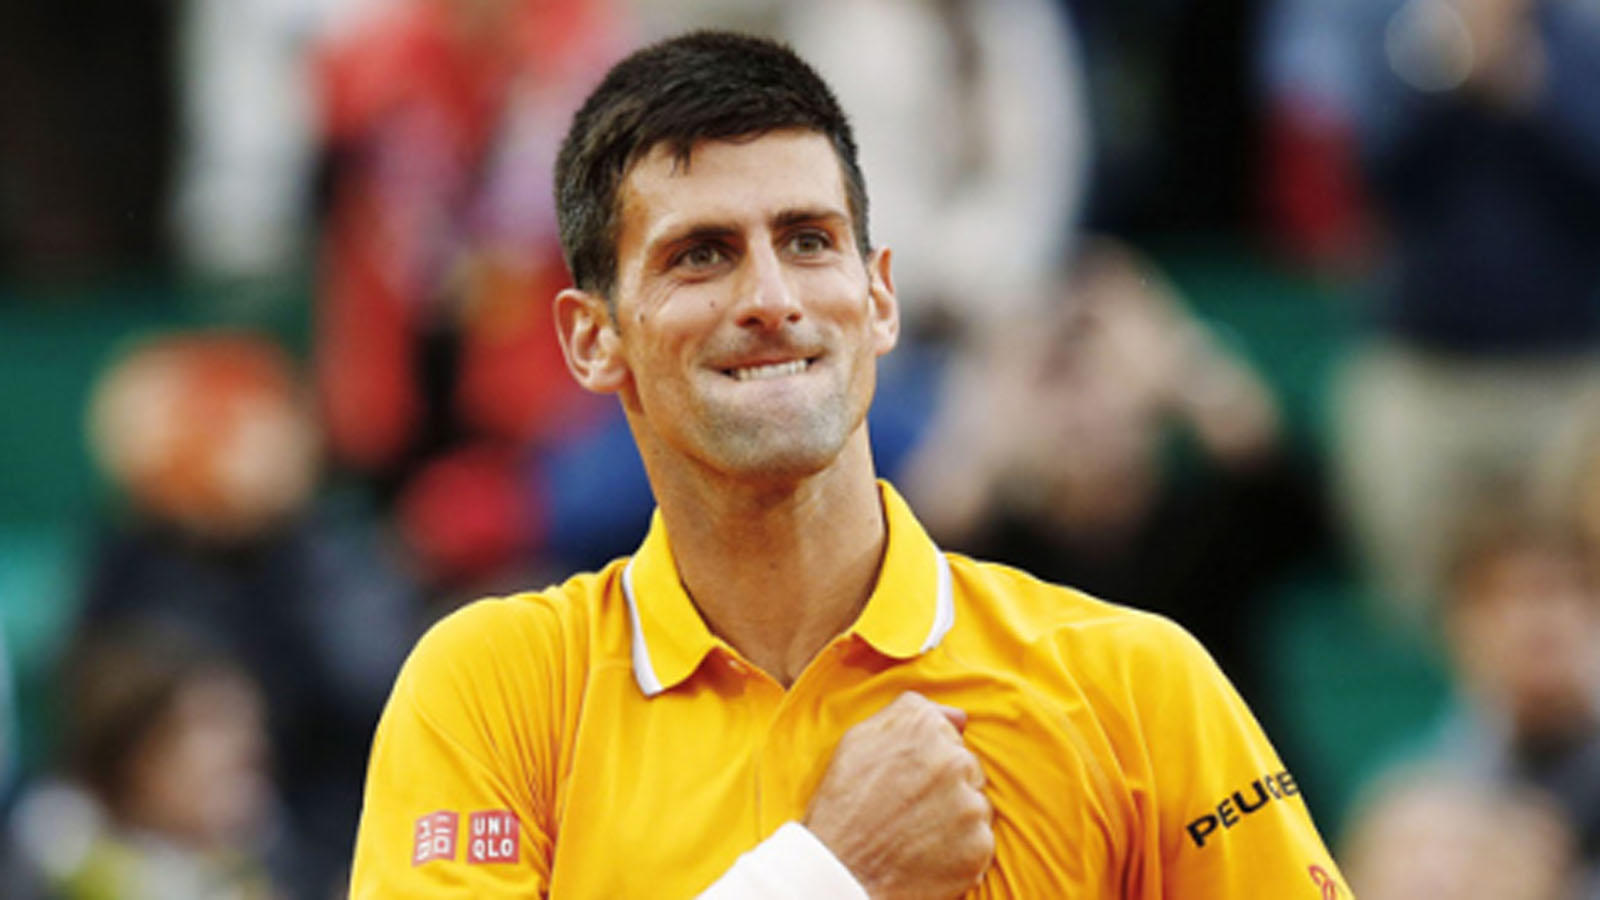 novak-djokovic-event-lacked-bit-of-common-sense-vijay-amritraj